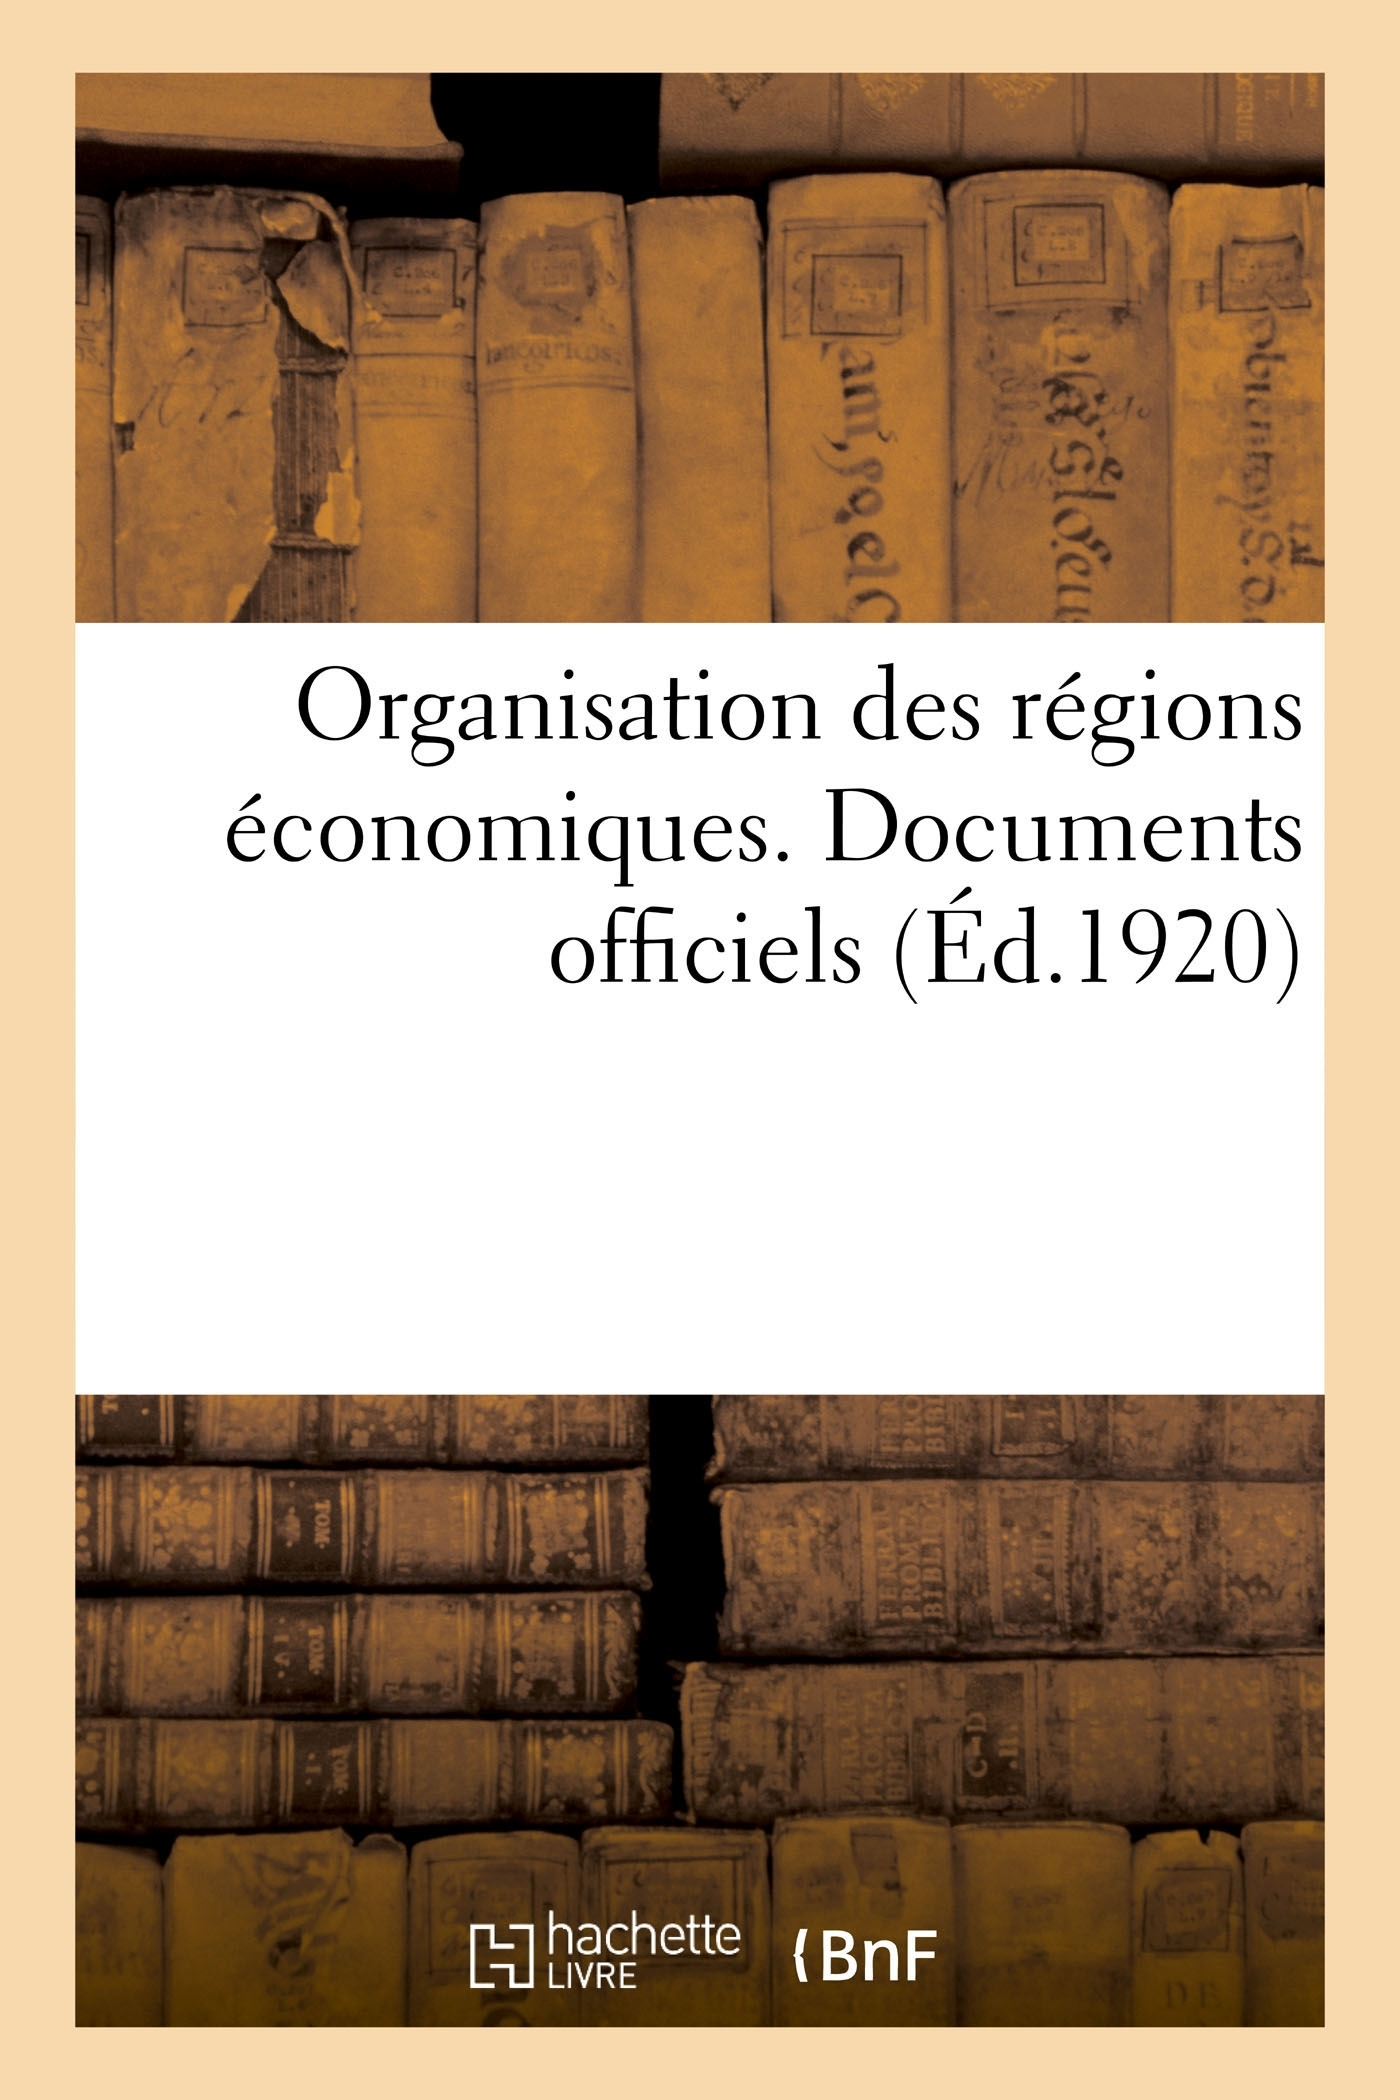 ORGANISATION DES REGIONS ECONOMIQUES. DOCUMENTS OFFICIELS - MINISTERE DU COMMERCE ET DE L'INDUSTRIE.